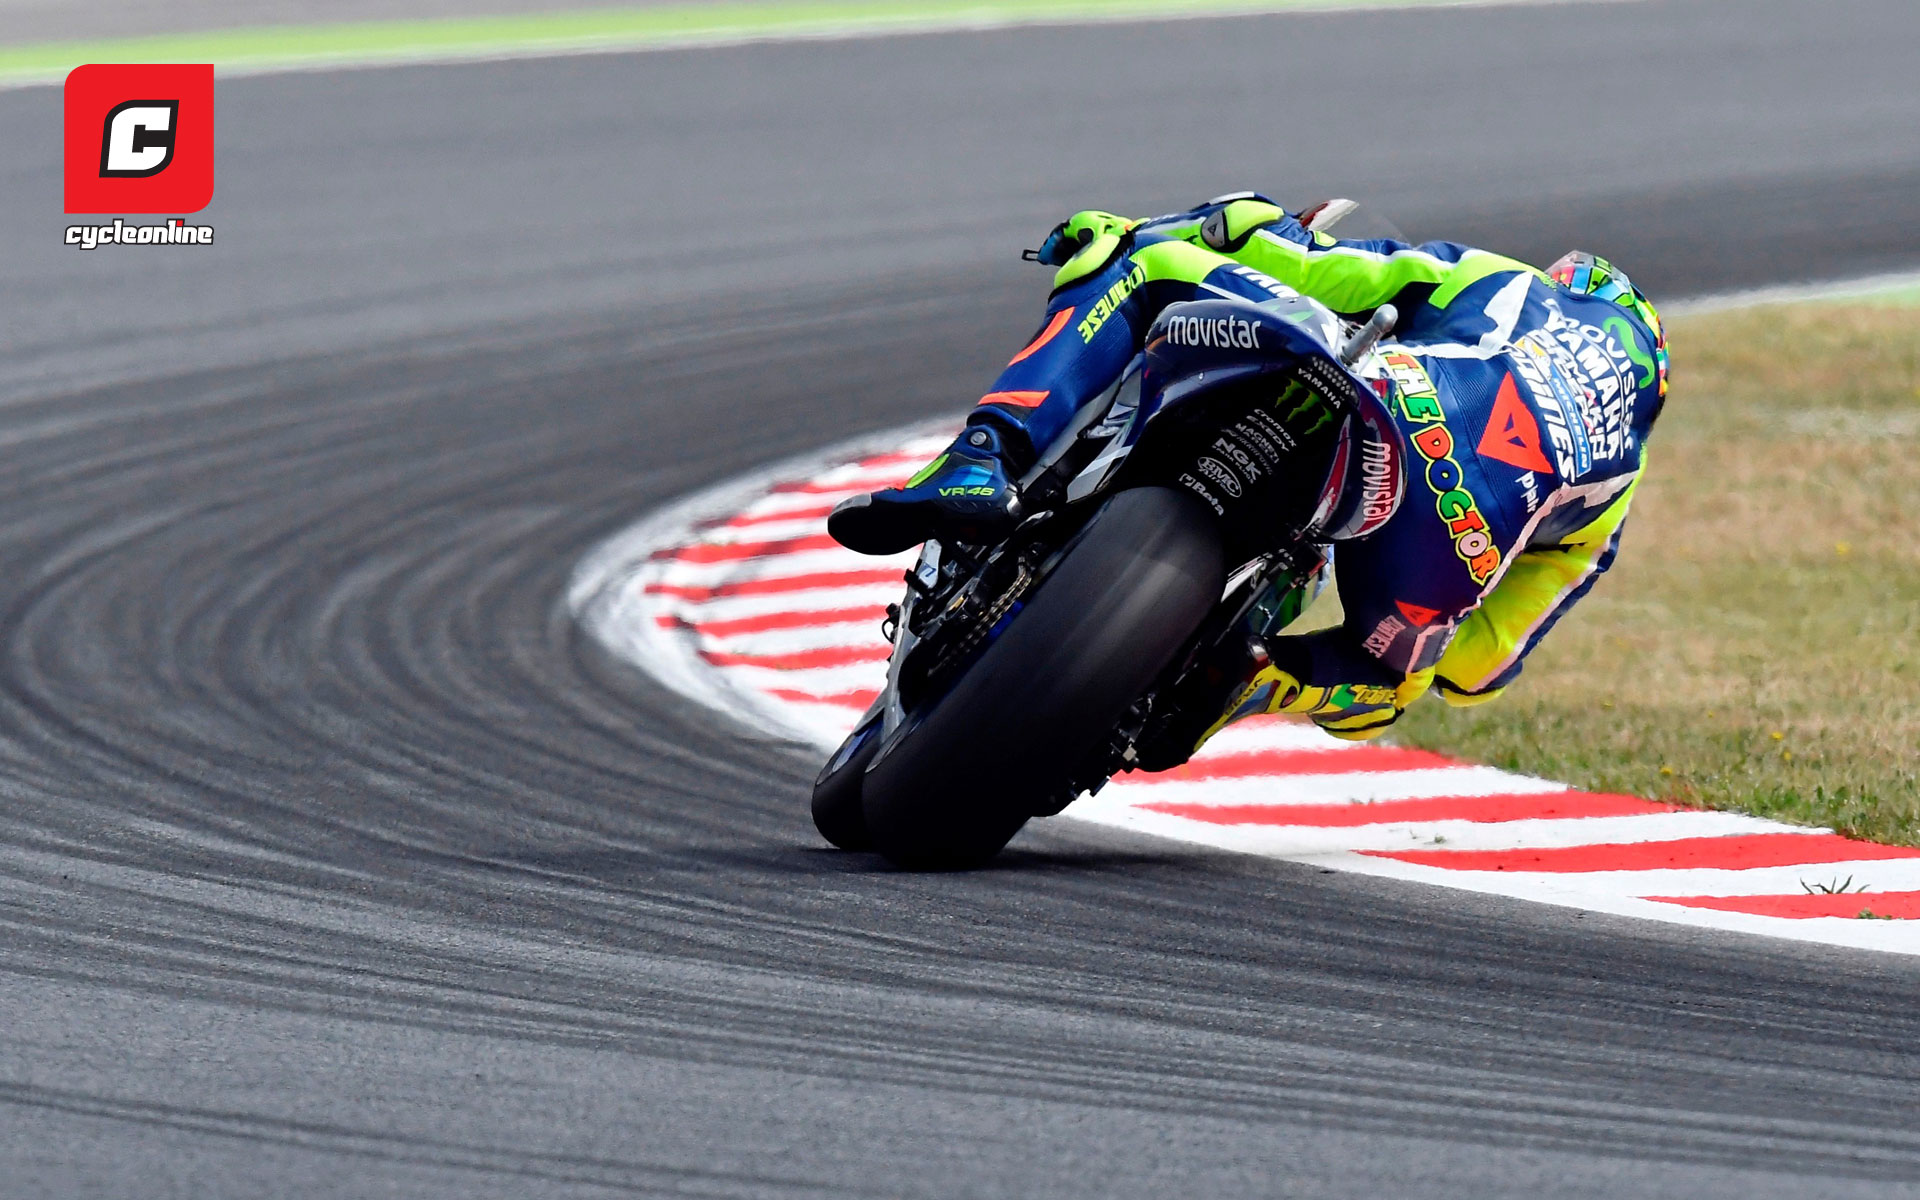 Wallpaper valentino rossi news 2016 - betar and behlul wallpapers desktop dekh bhai images in ...